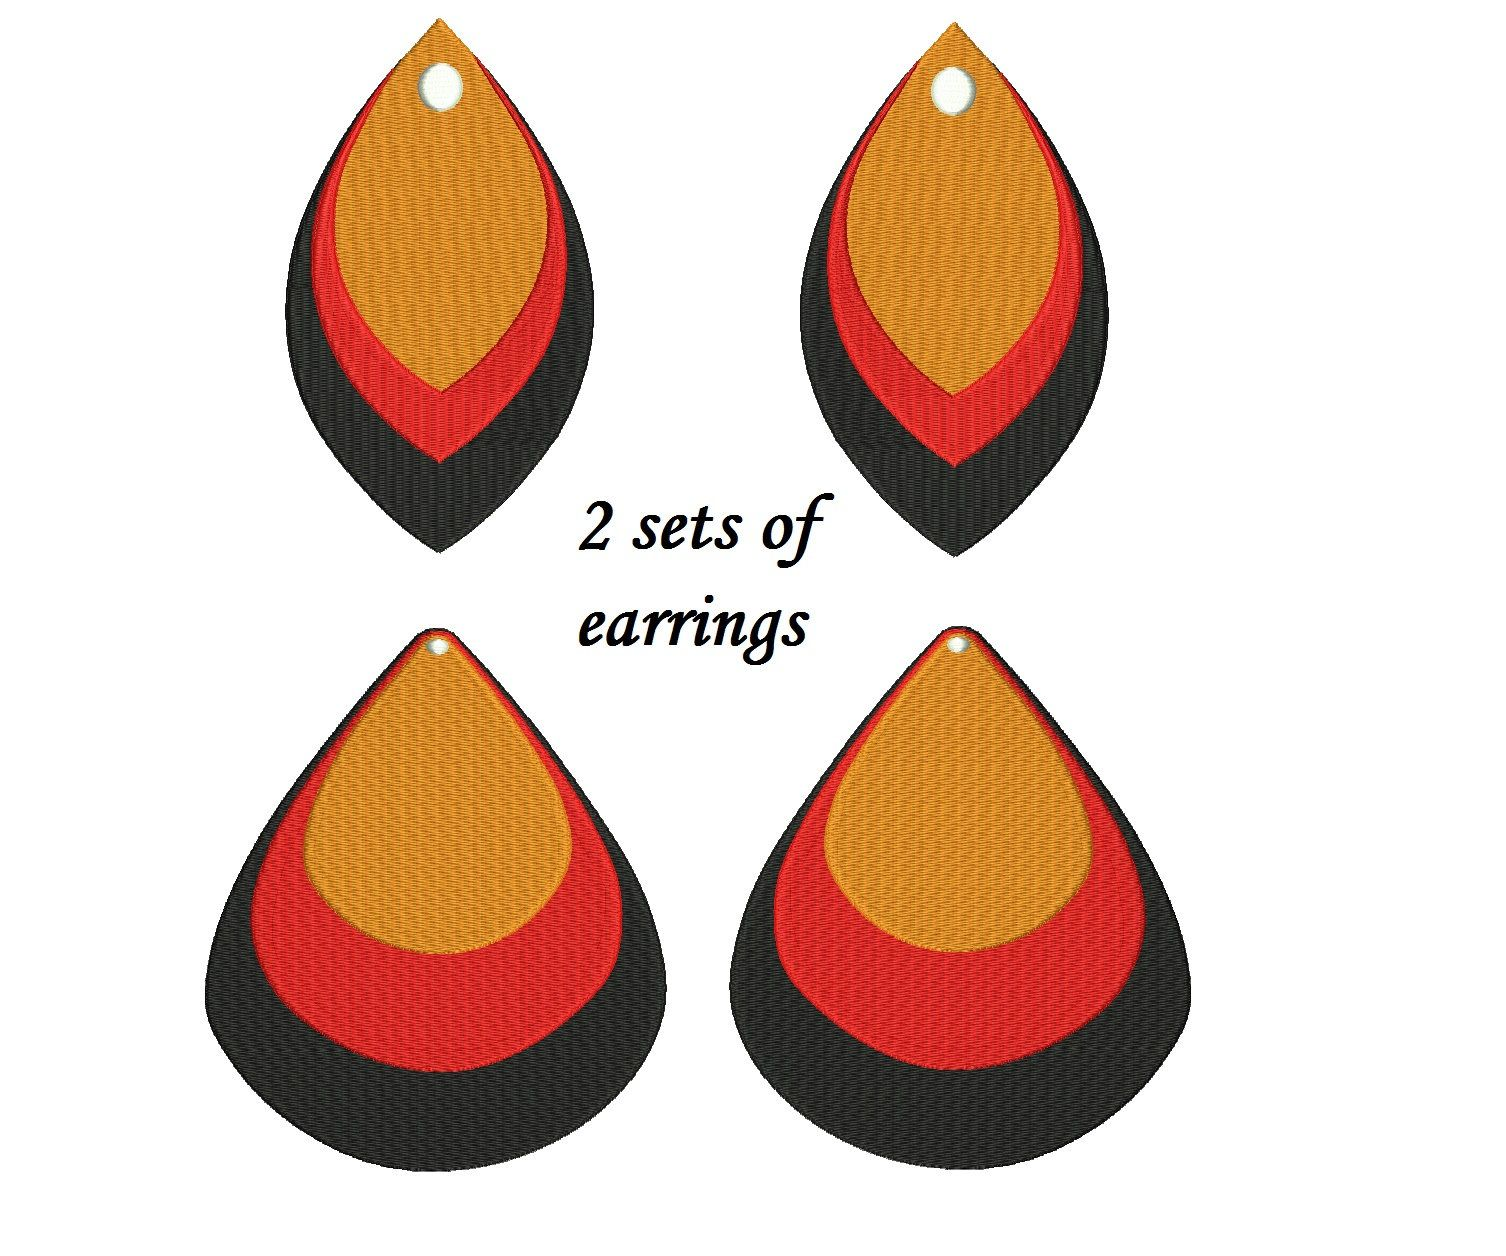 Stacked Earrings Embroidery Designs 2 designs instant